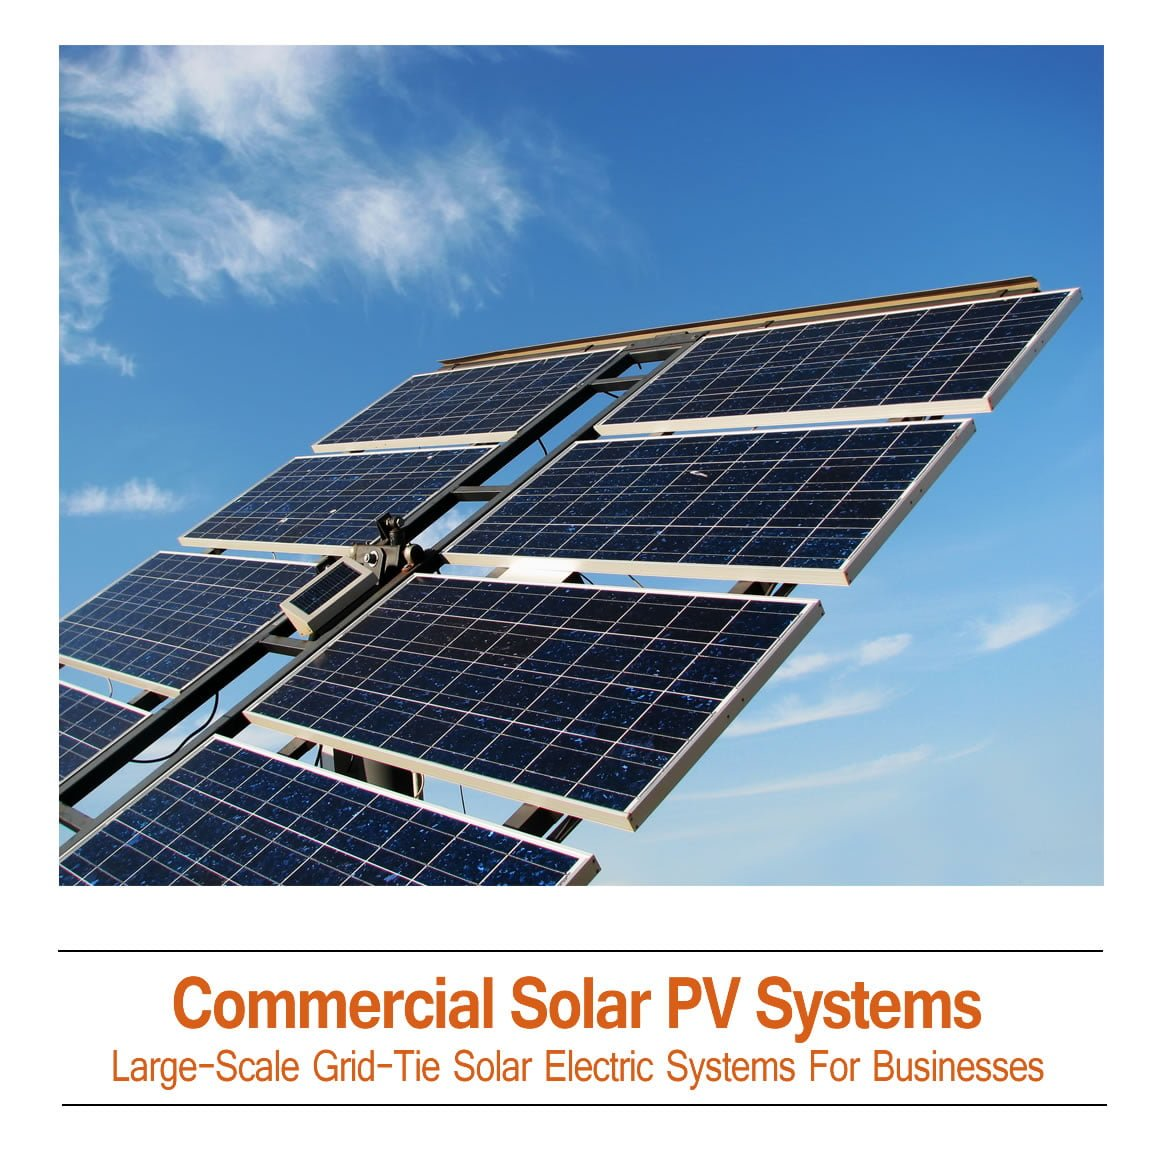 Commercial Solar Pv Systems  Solar Thermal Manufacturer. Associates Degree Physical Therapy. Shopping Website Template College In Maryland. Photography Colleges In Florida. Medical Device Testing Labs White Label Voip. Suburban Law Enforcement Academy. Become A Special Needs Teacher. Plastic Surgeons In La Jolla. Chiropractor Suwanee Ga Plumber Woodbridge Va